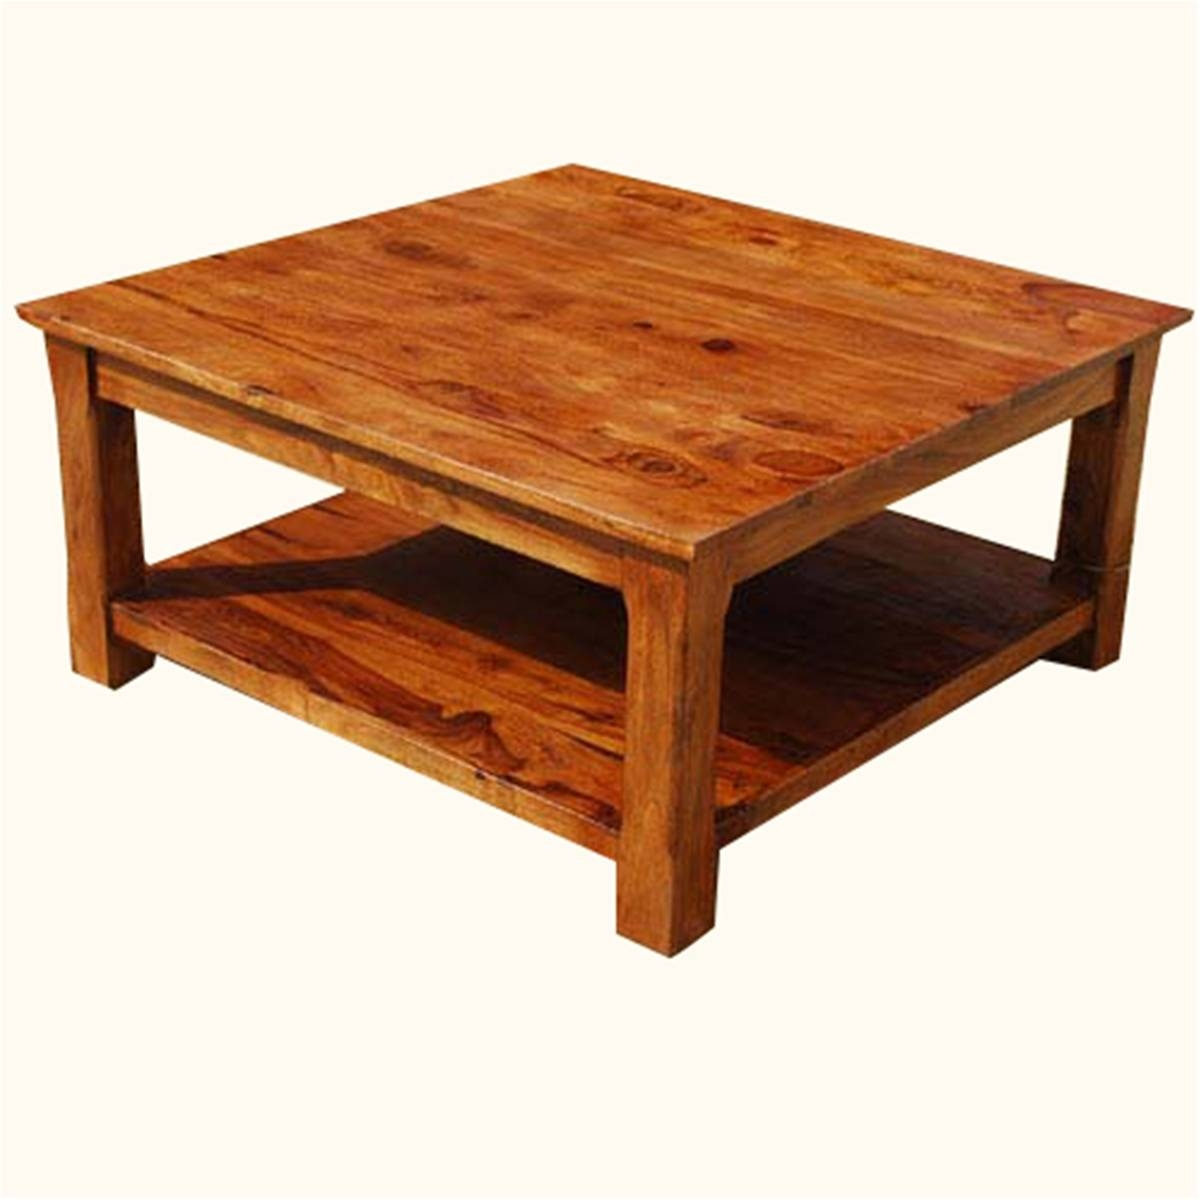 Espresso Solid Wood Coffee Table | Coffee Tables Decoration With Solid Wood Coffee Tables (View 22 of 30)